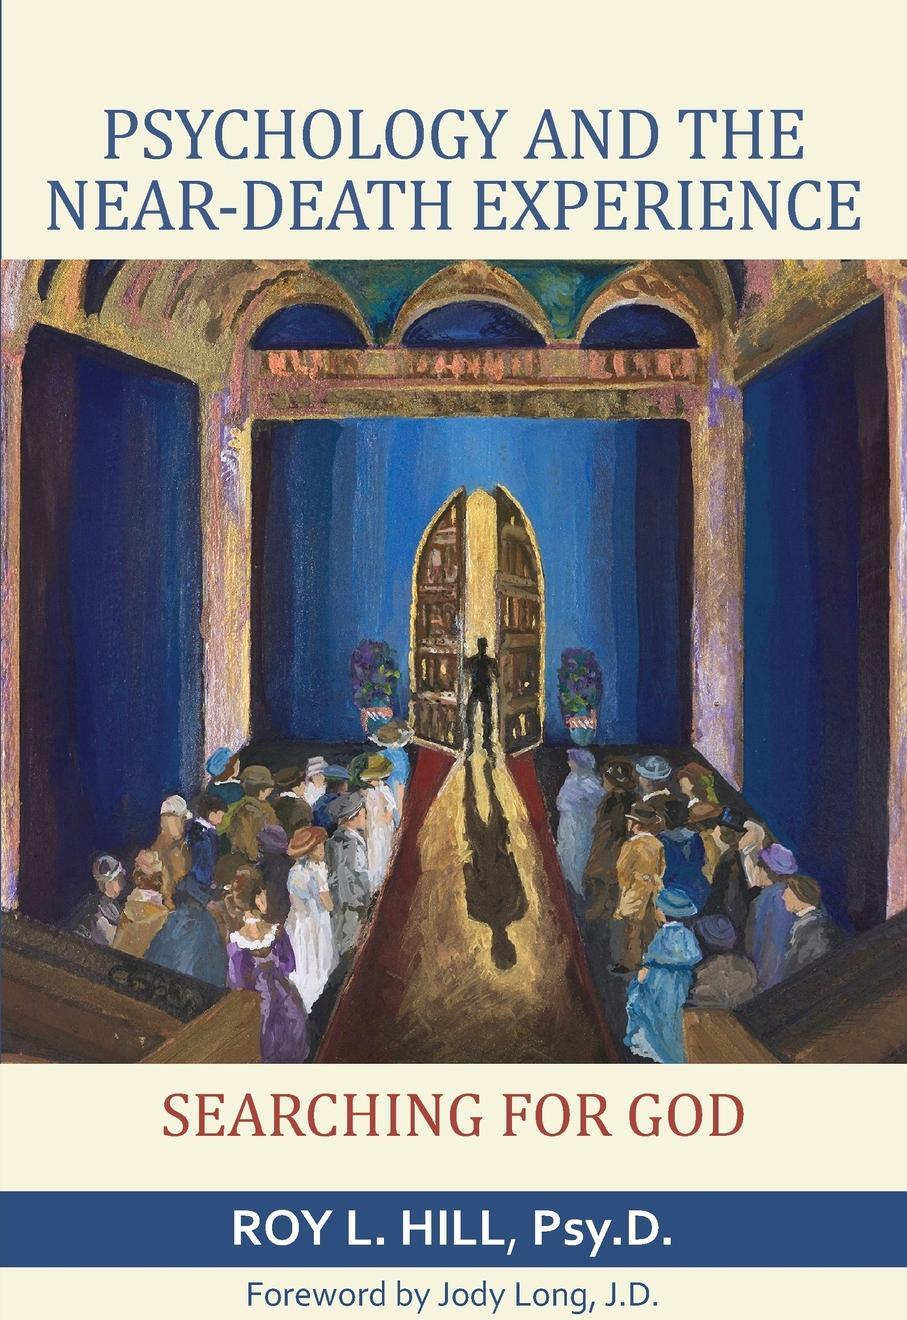 Psychology and the Near-Death Experience. Searching for God. Roy L. Hill